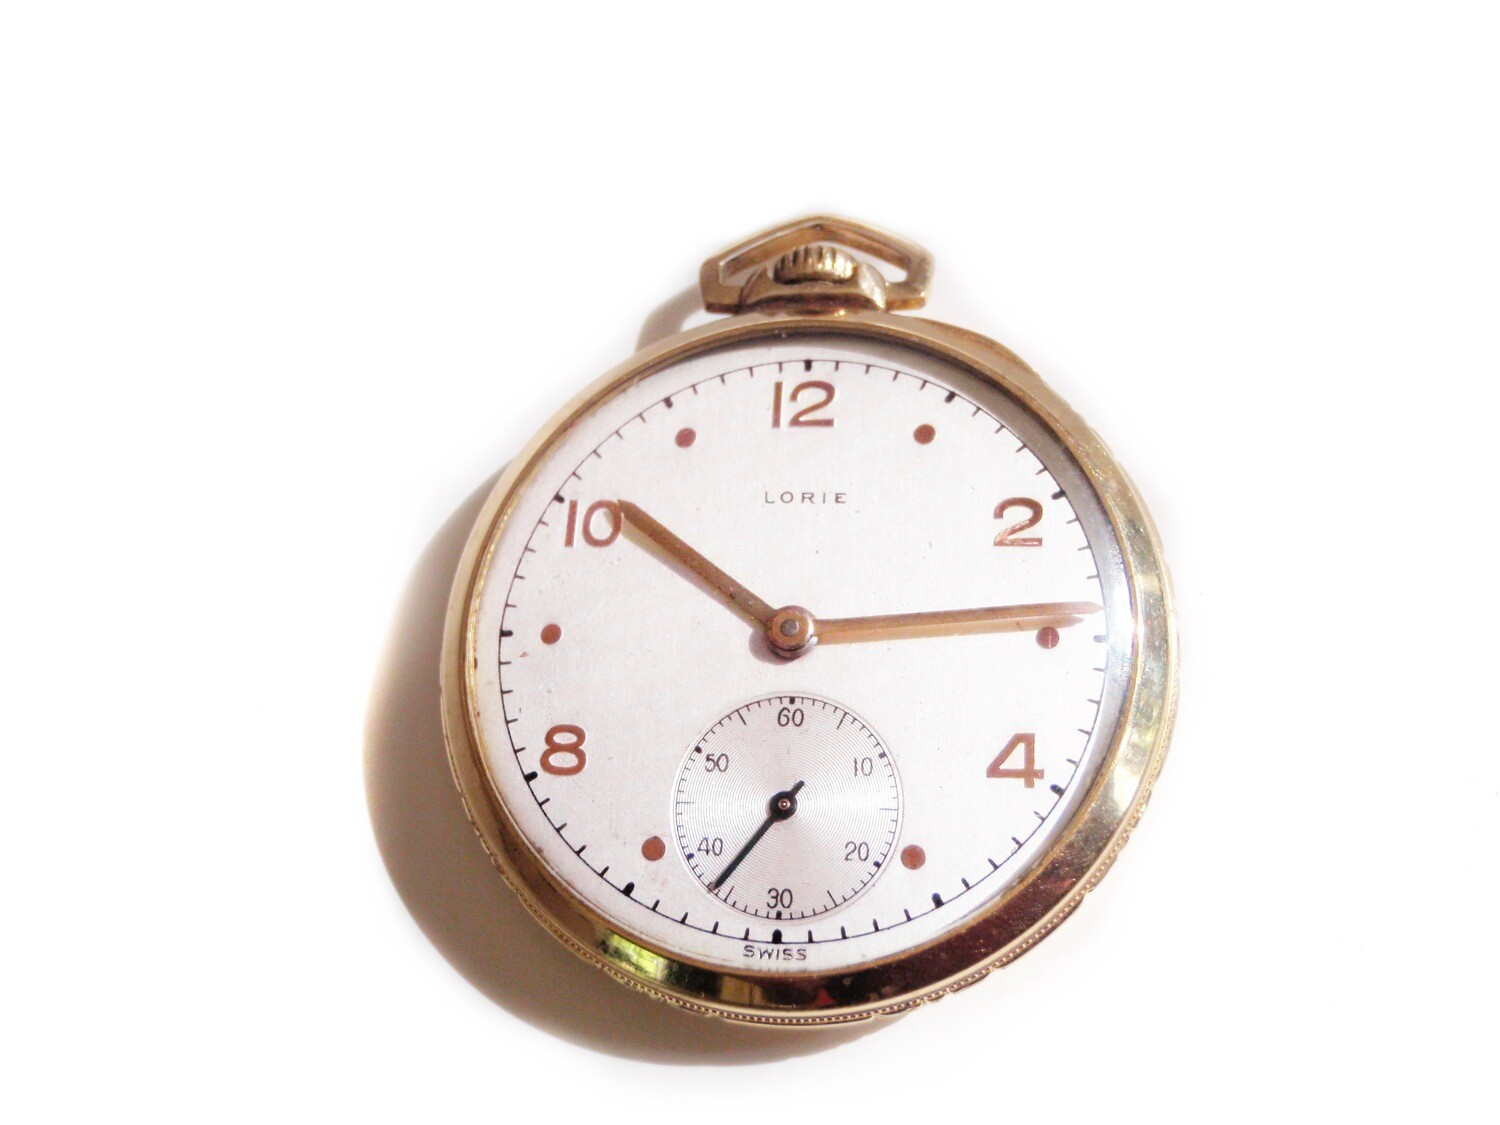 Vintage Lorie Unisex Pocket Watch Silver Dial Brass Case